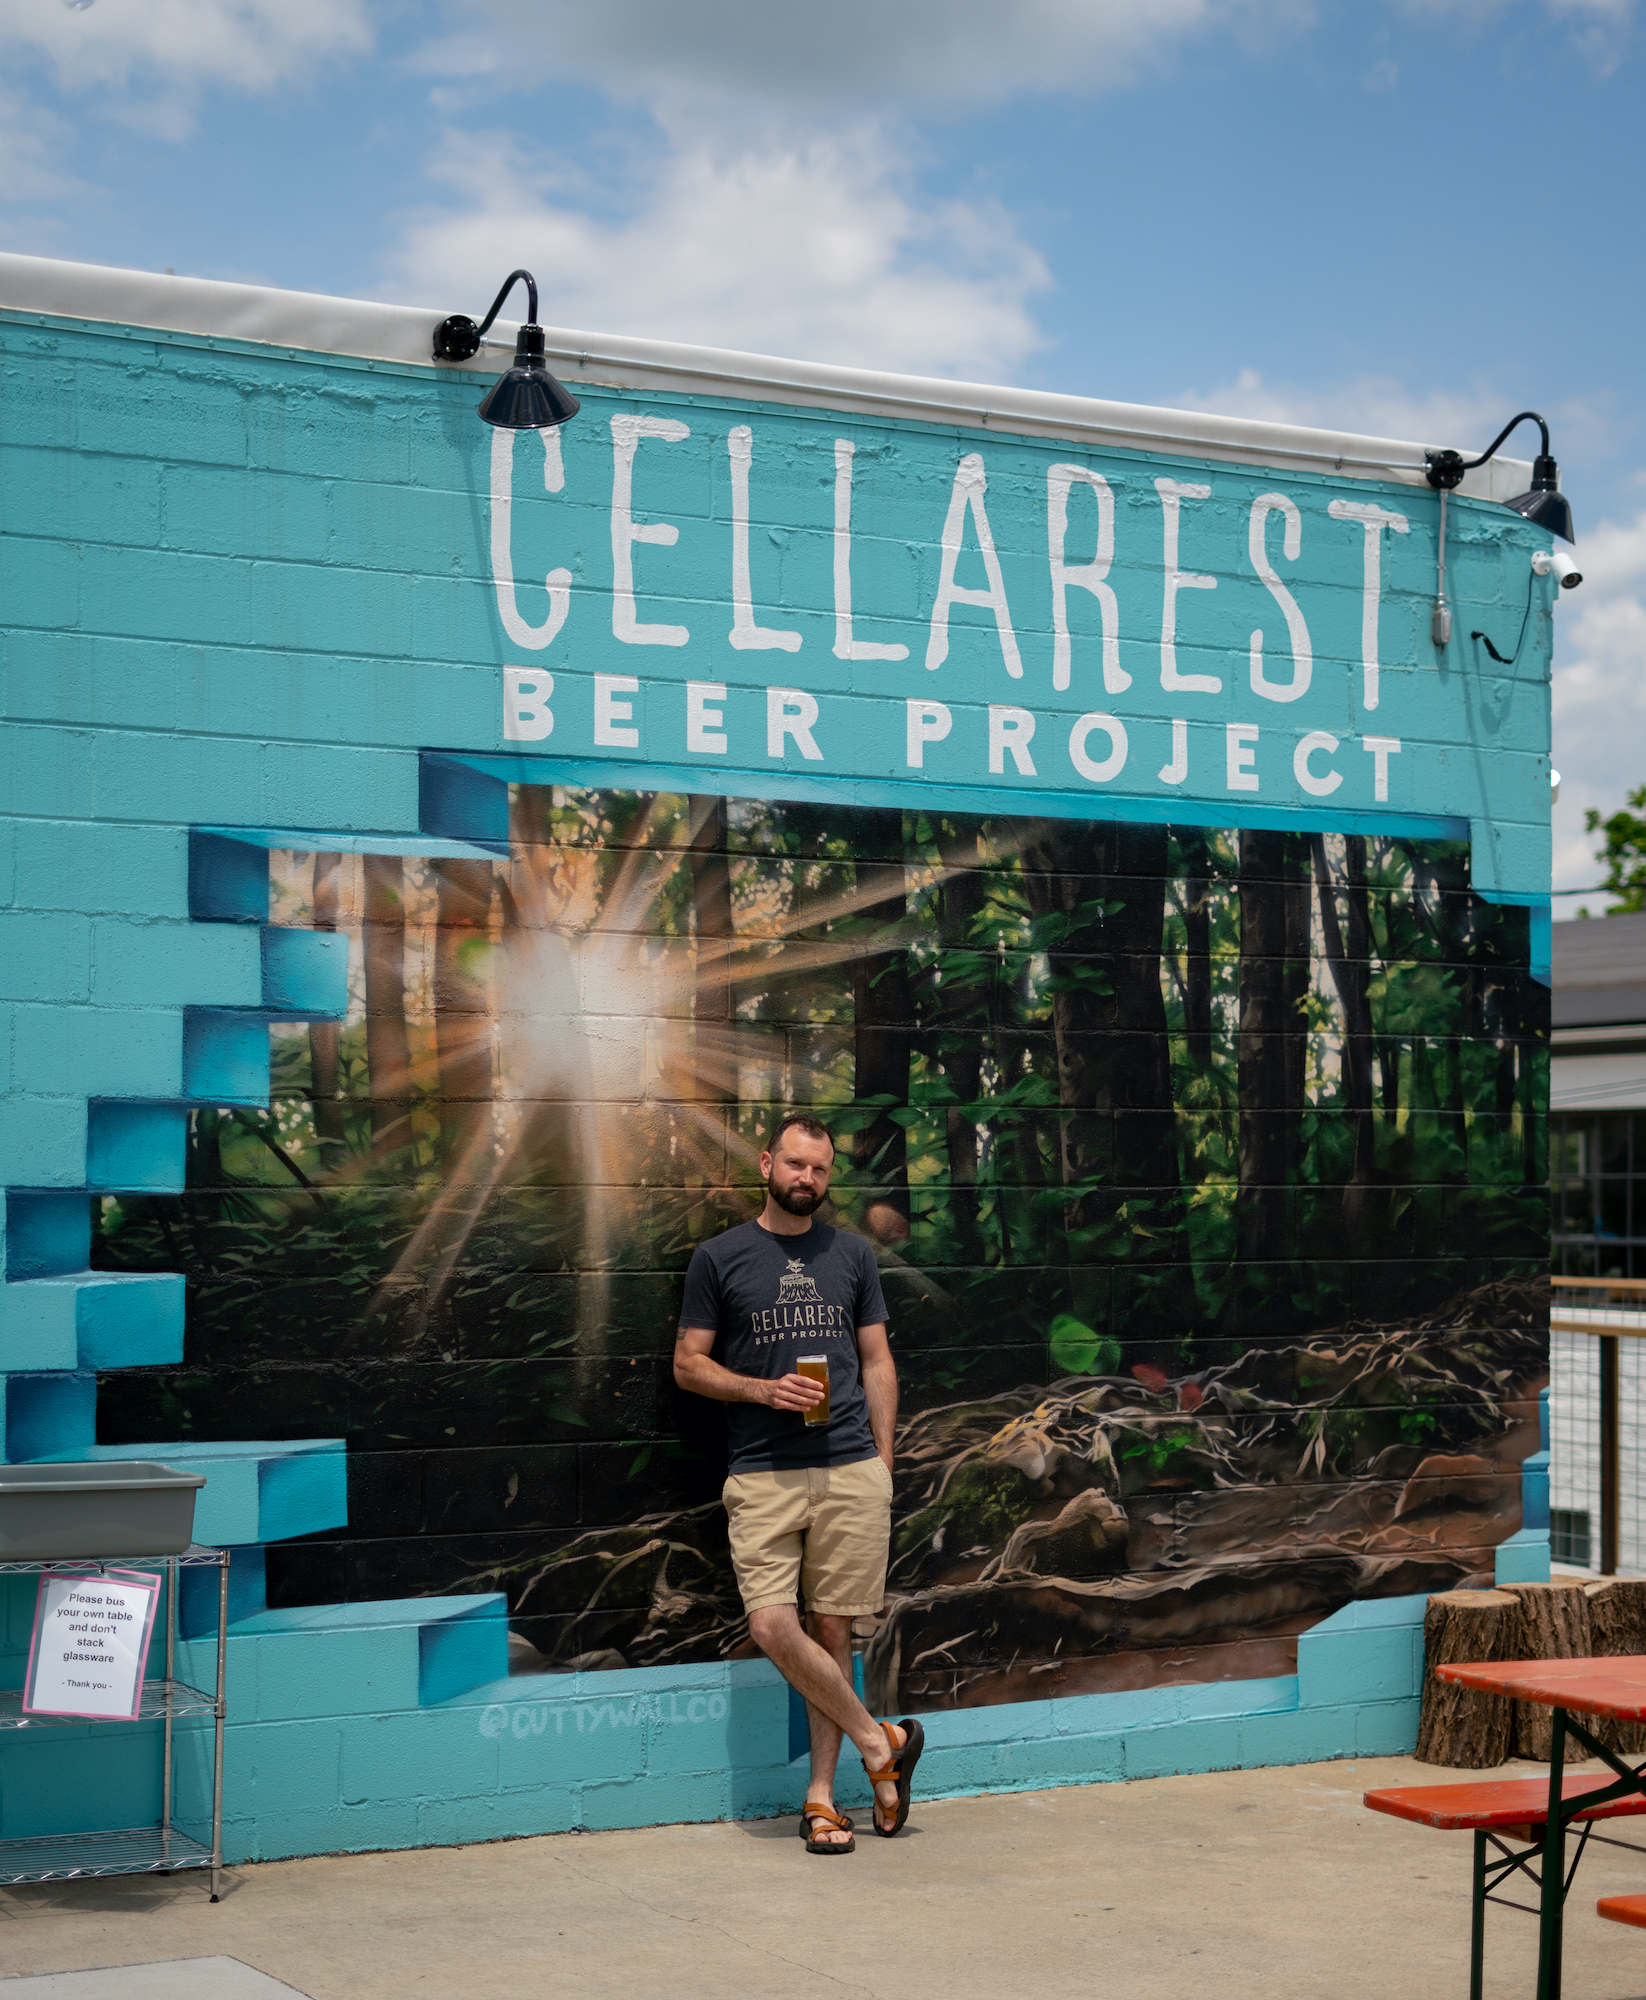 Portraits of Our Partners: Cellarest Beer Project